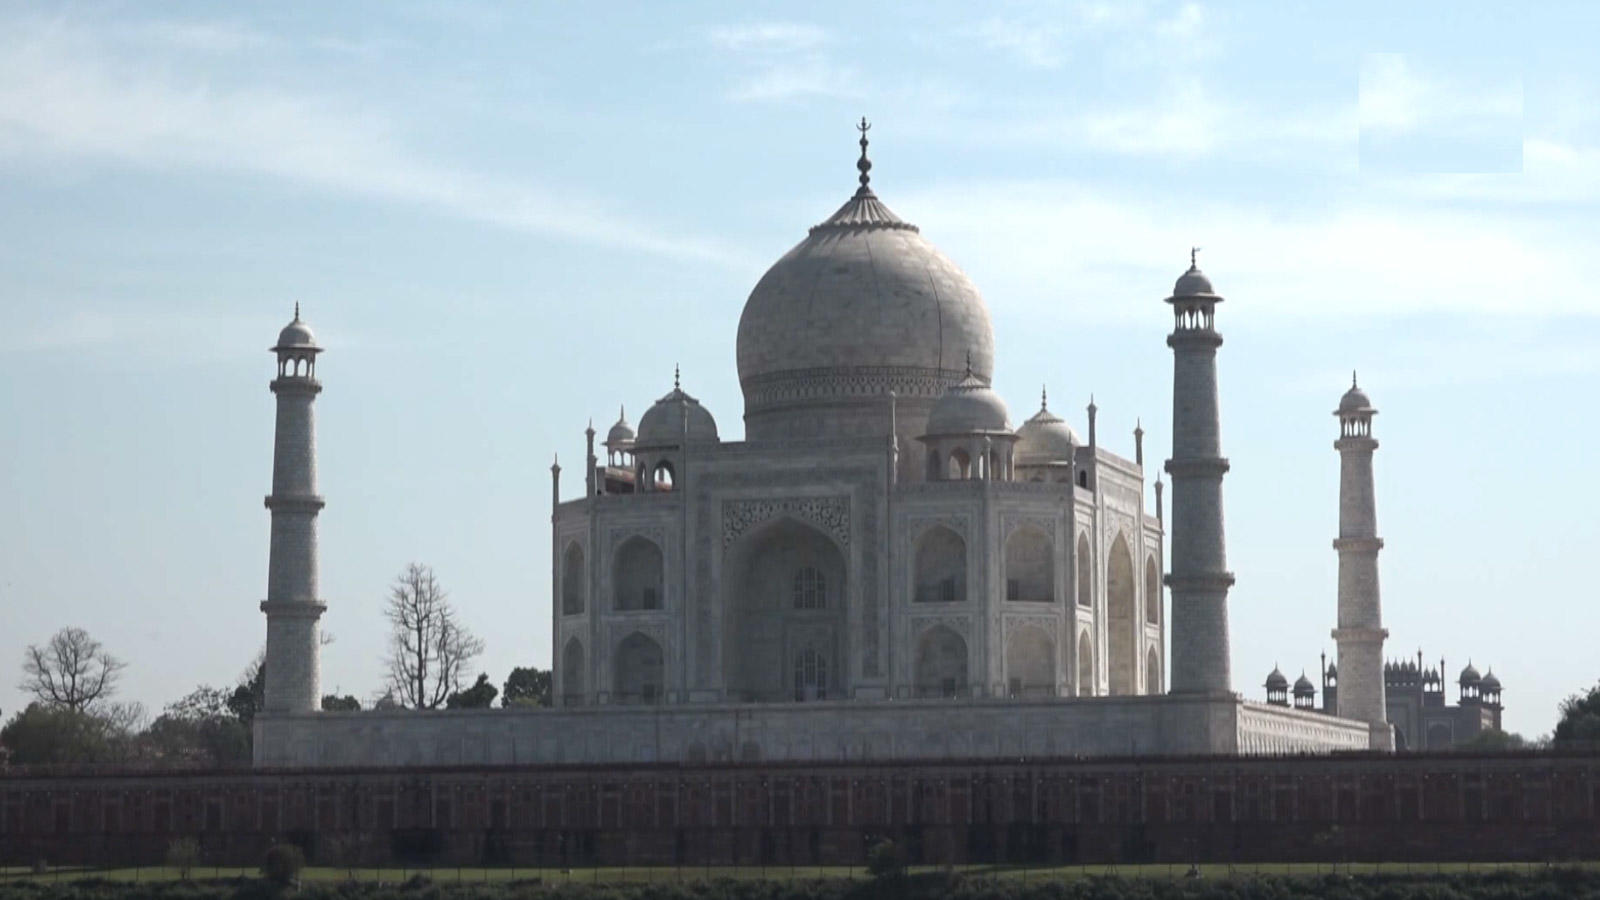 president-trump-may-visit-taj-mahal-beautification-drive-begins-in-agra